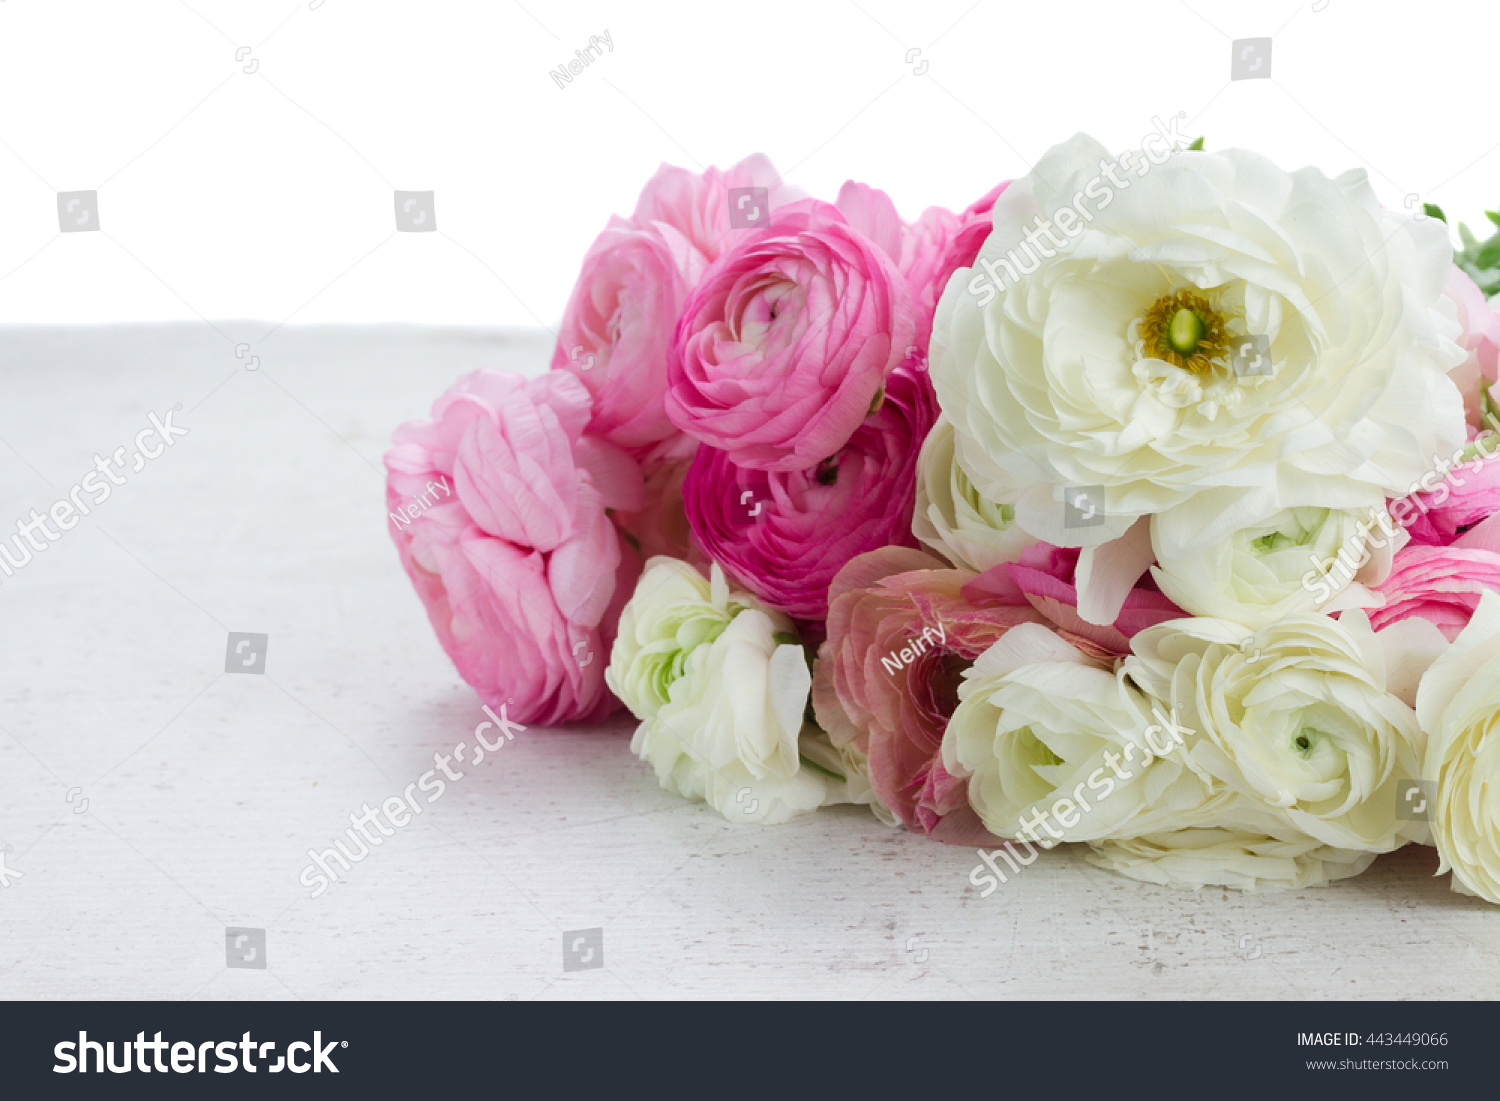 Pink And White Ranunculus Fresh Flowers On White Table Border